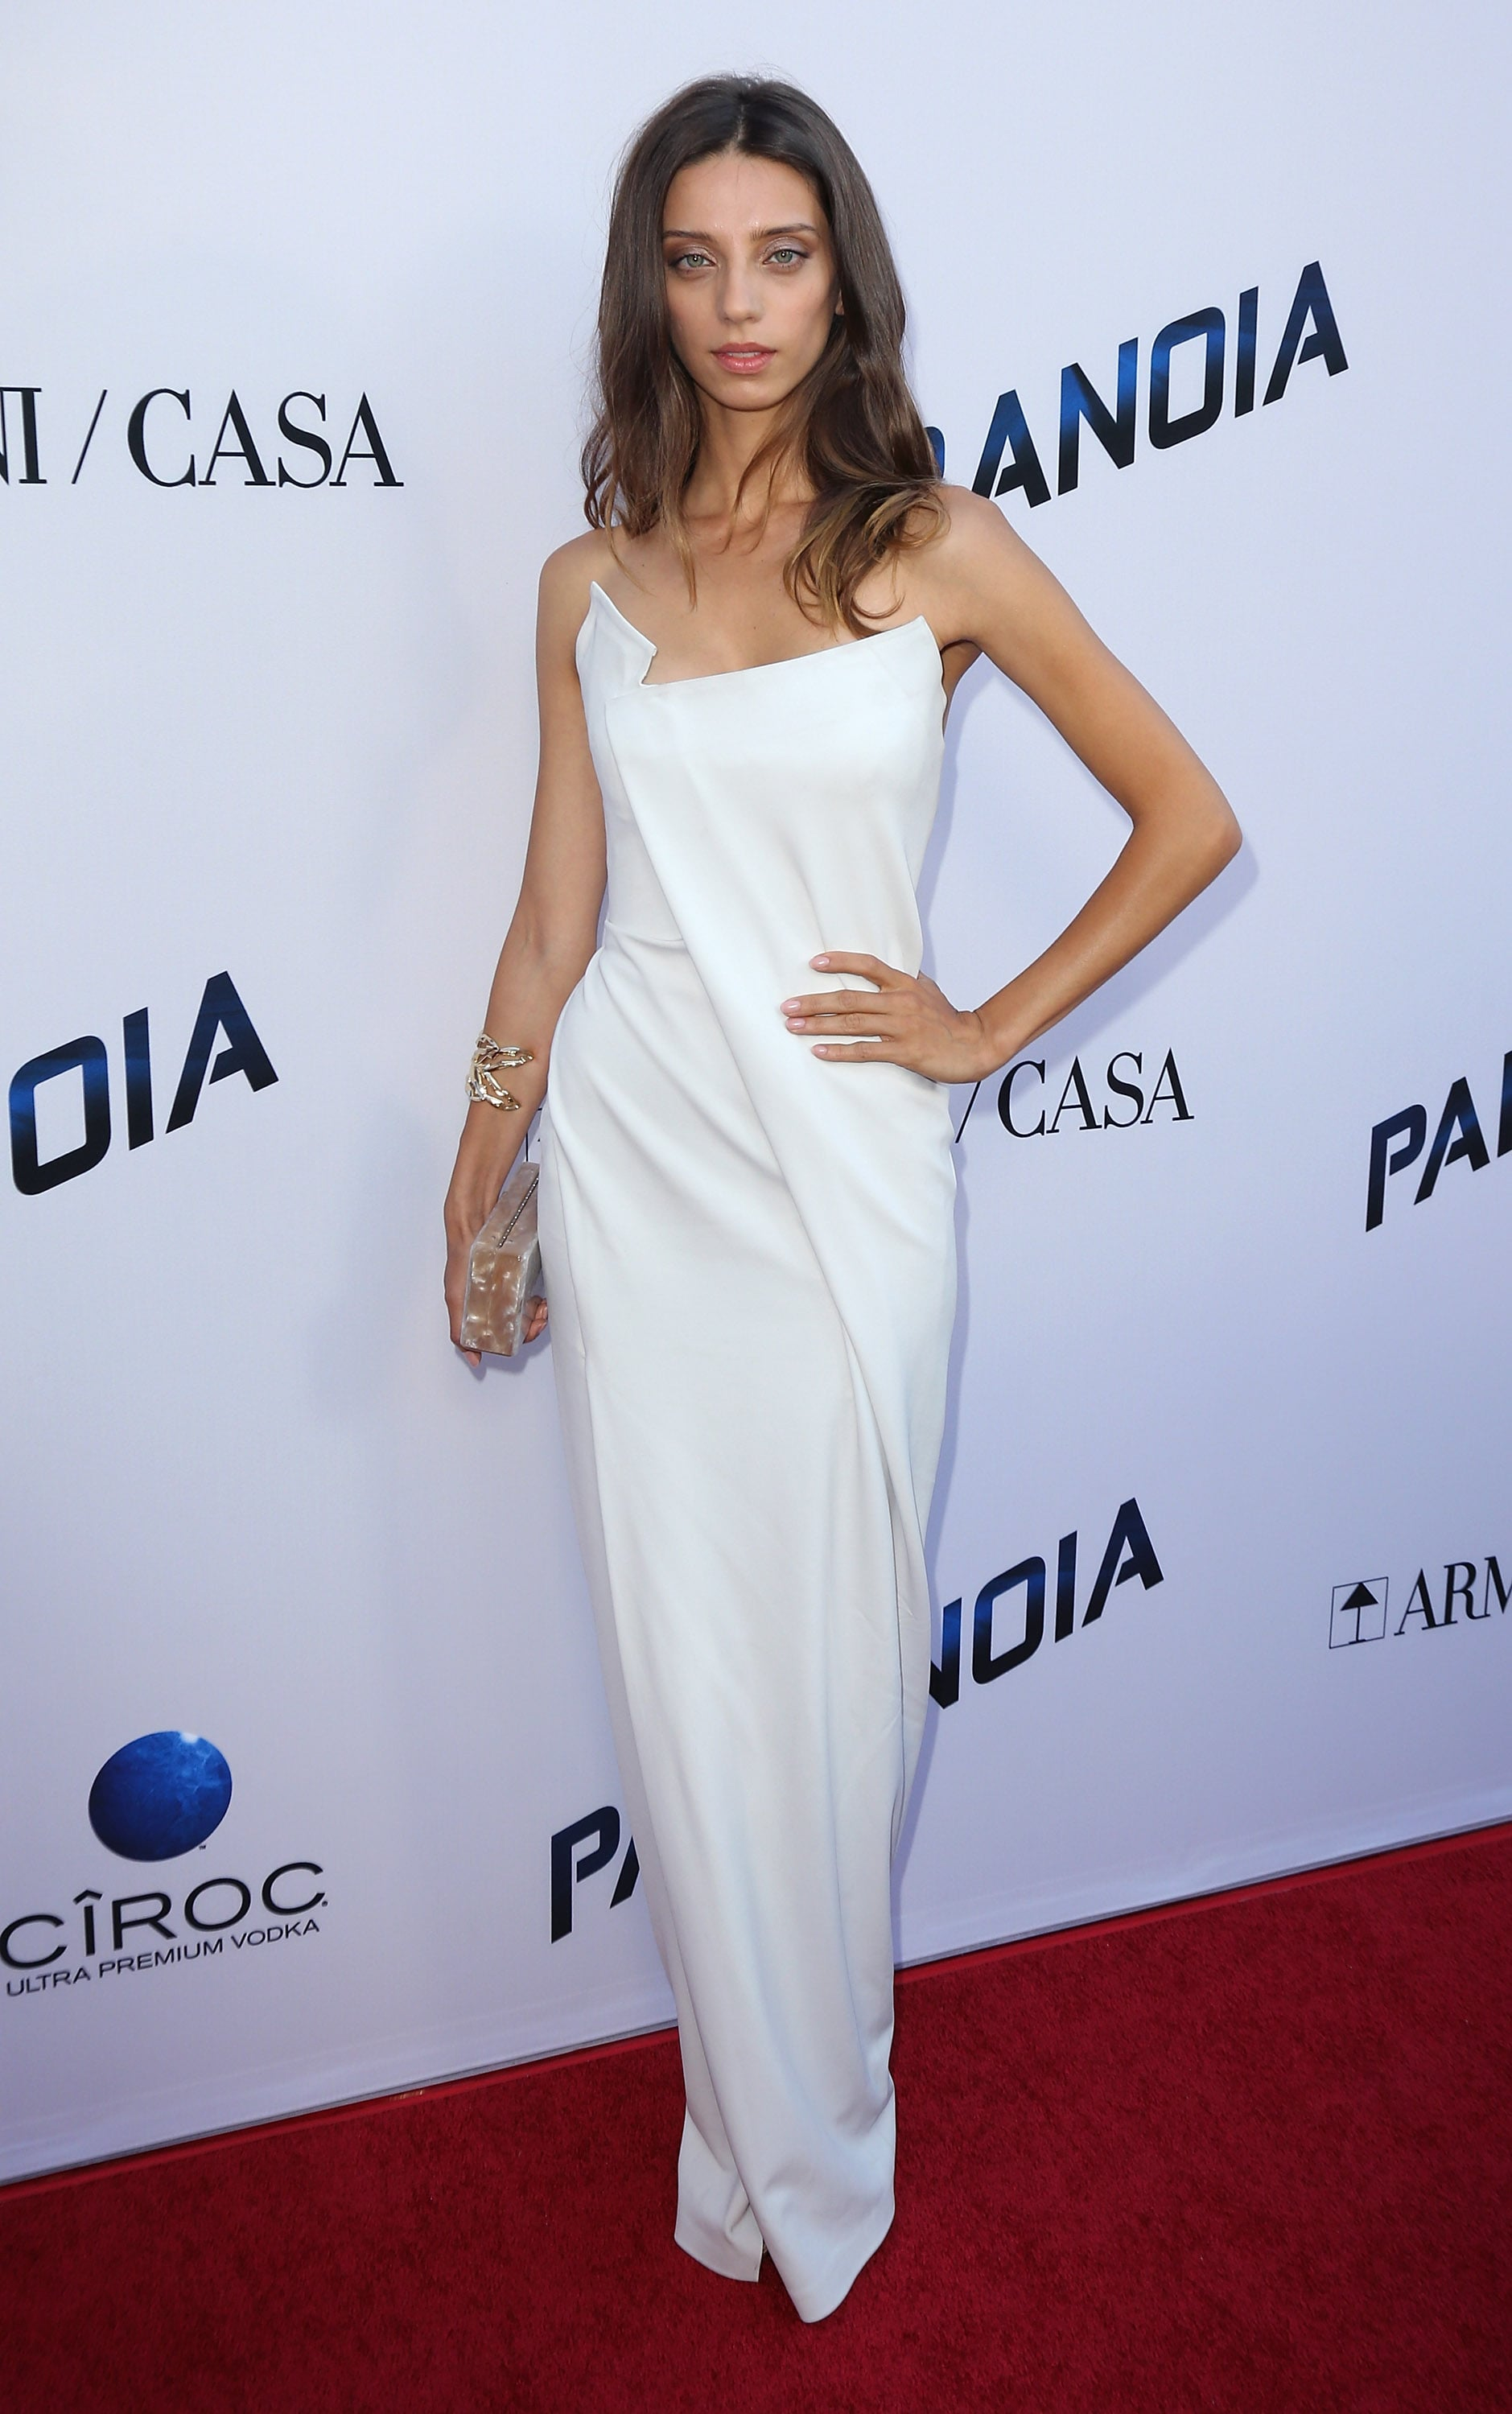 At the LA premiere of Paranoia, Angela Sarafyan brought the drama in a sculpted, white Donna Karan column.